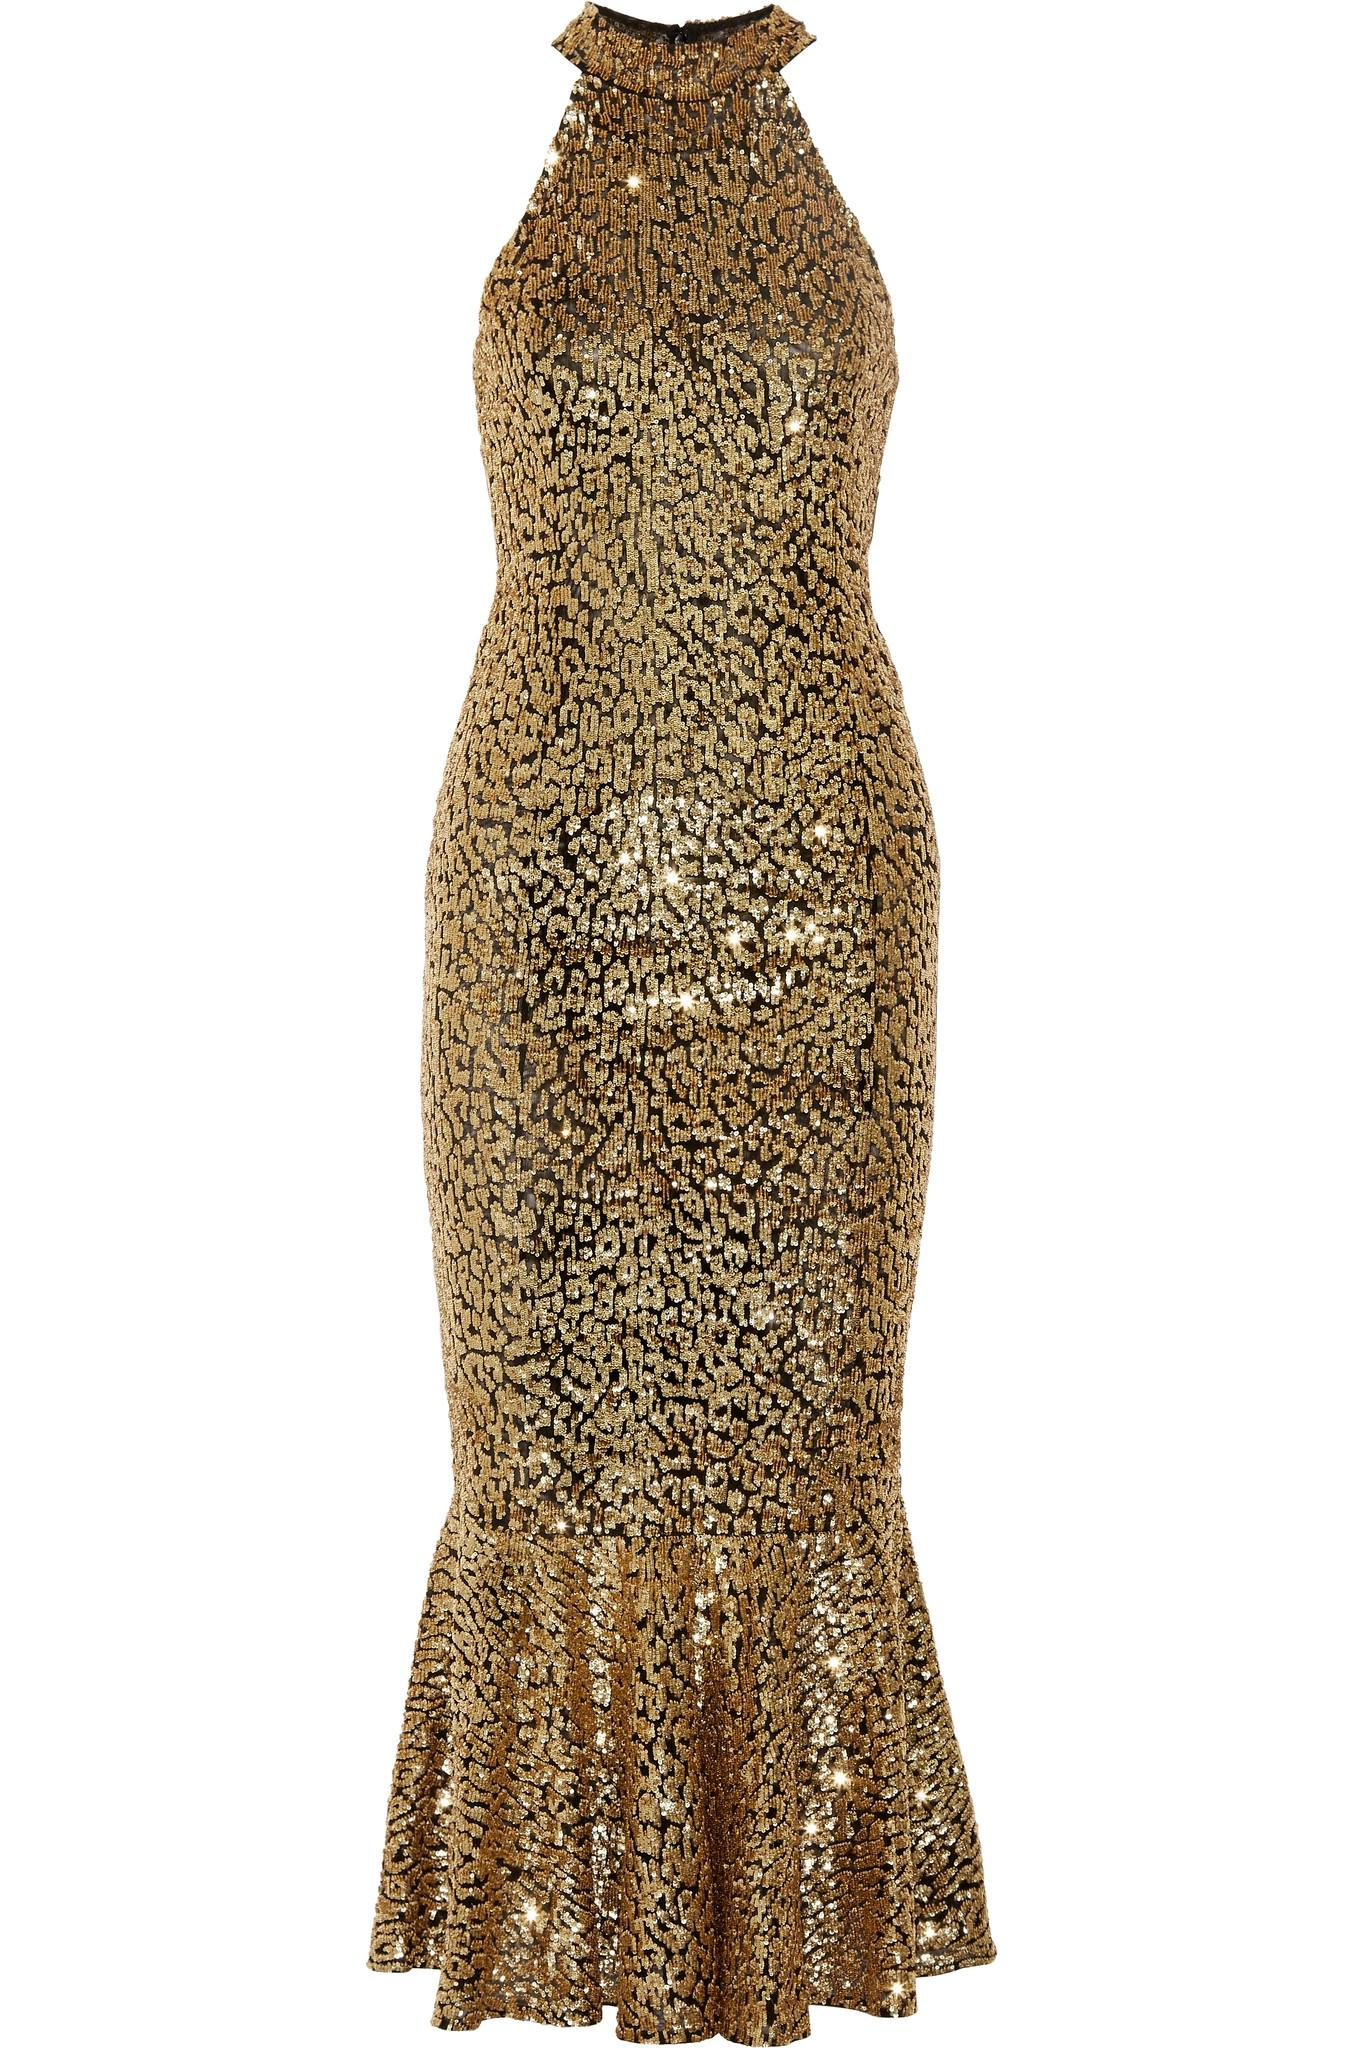 Lyst - Michael Kors Sequined Stretch-tulle Gown in Metallic